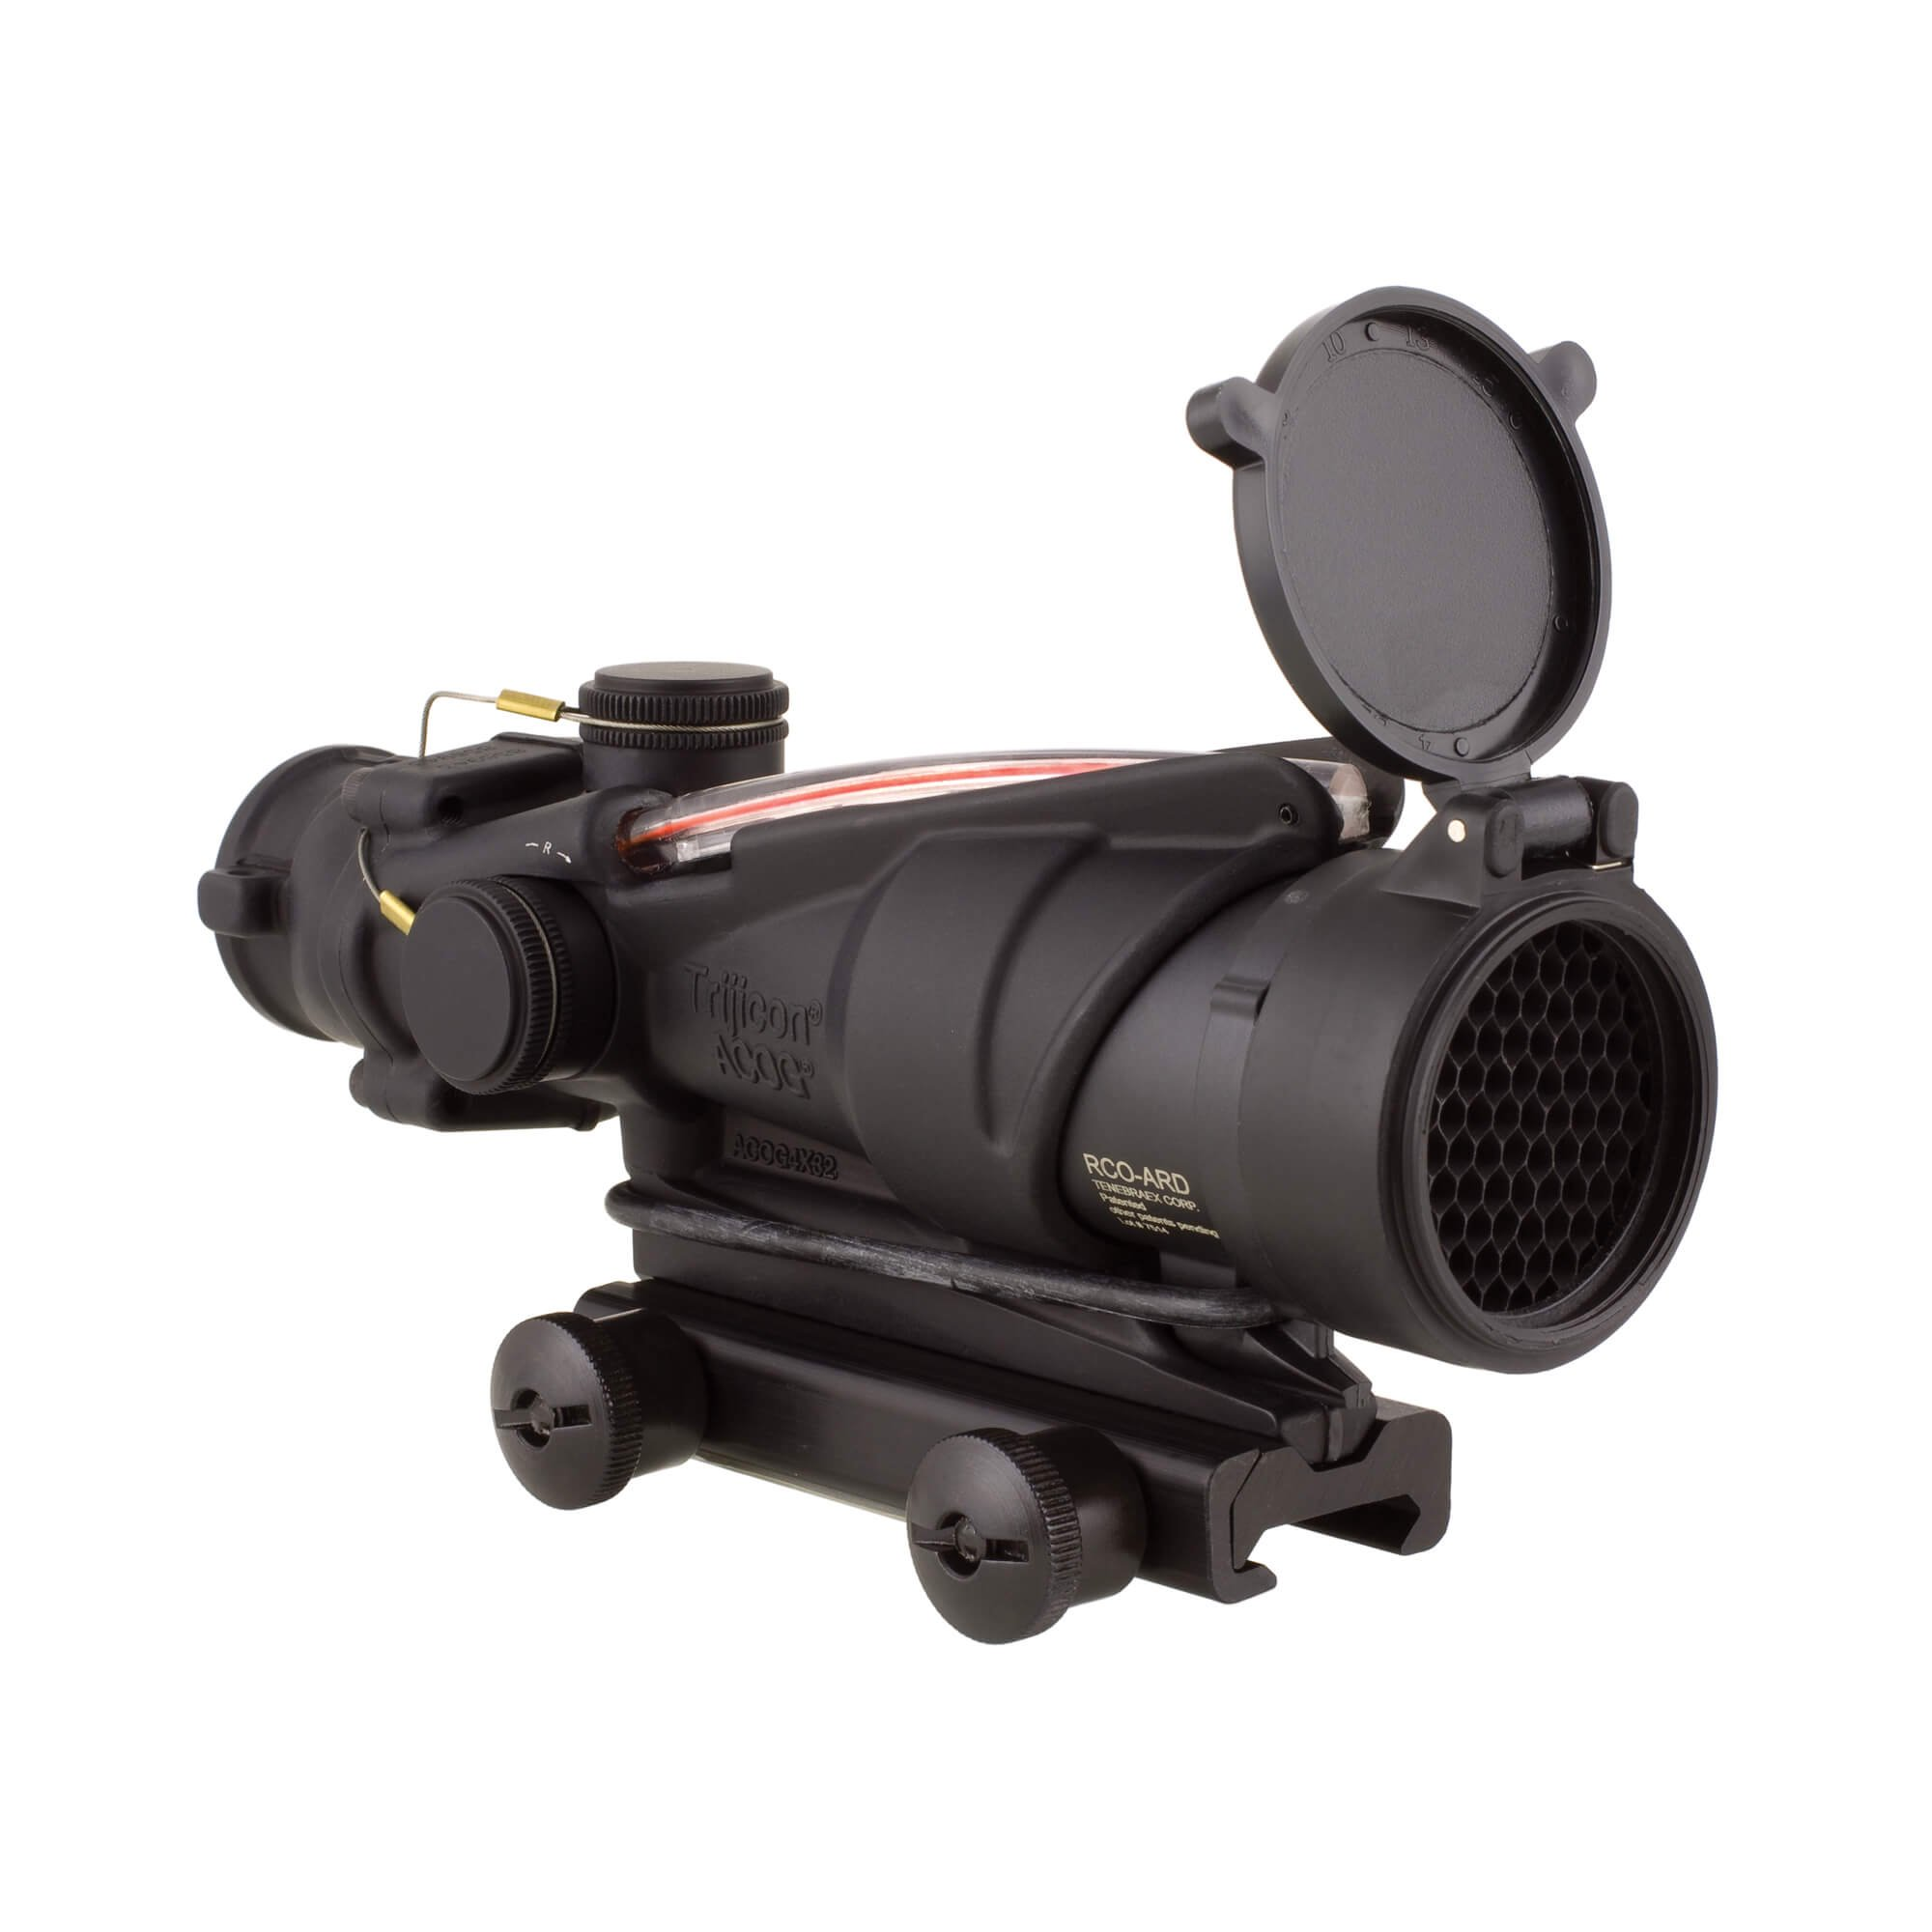 Trijicon TA31RCO-M150CP ACOG 4x32 BAC Rifle Optic with Red Chevron Reticle by Trijicon